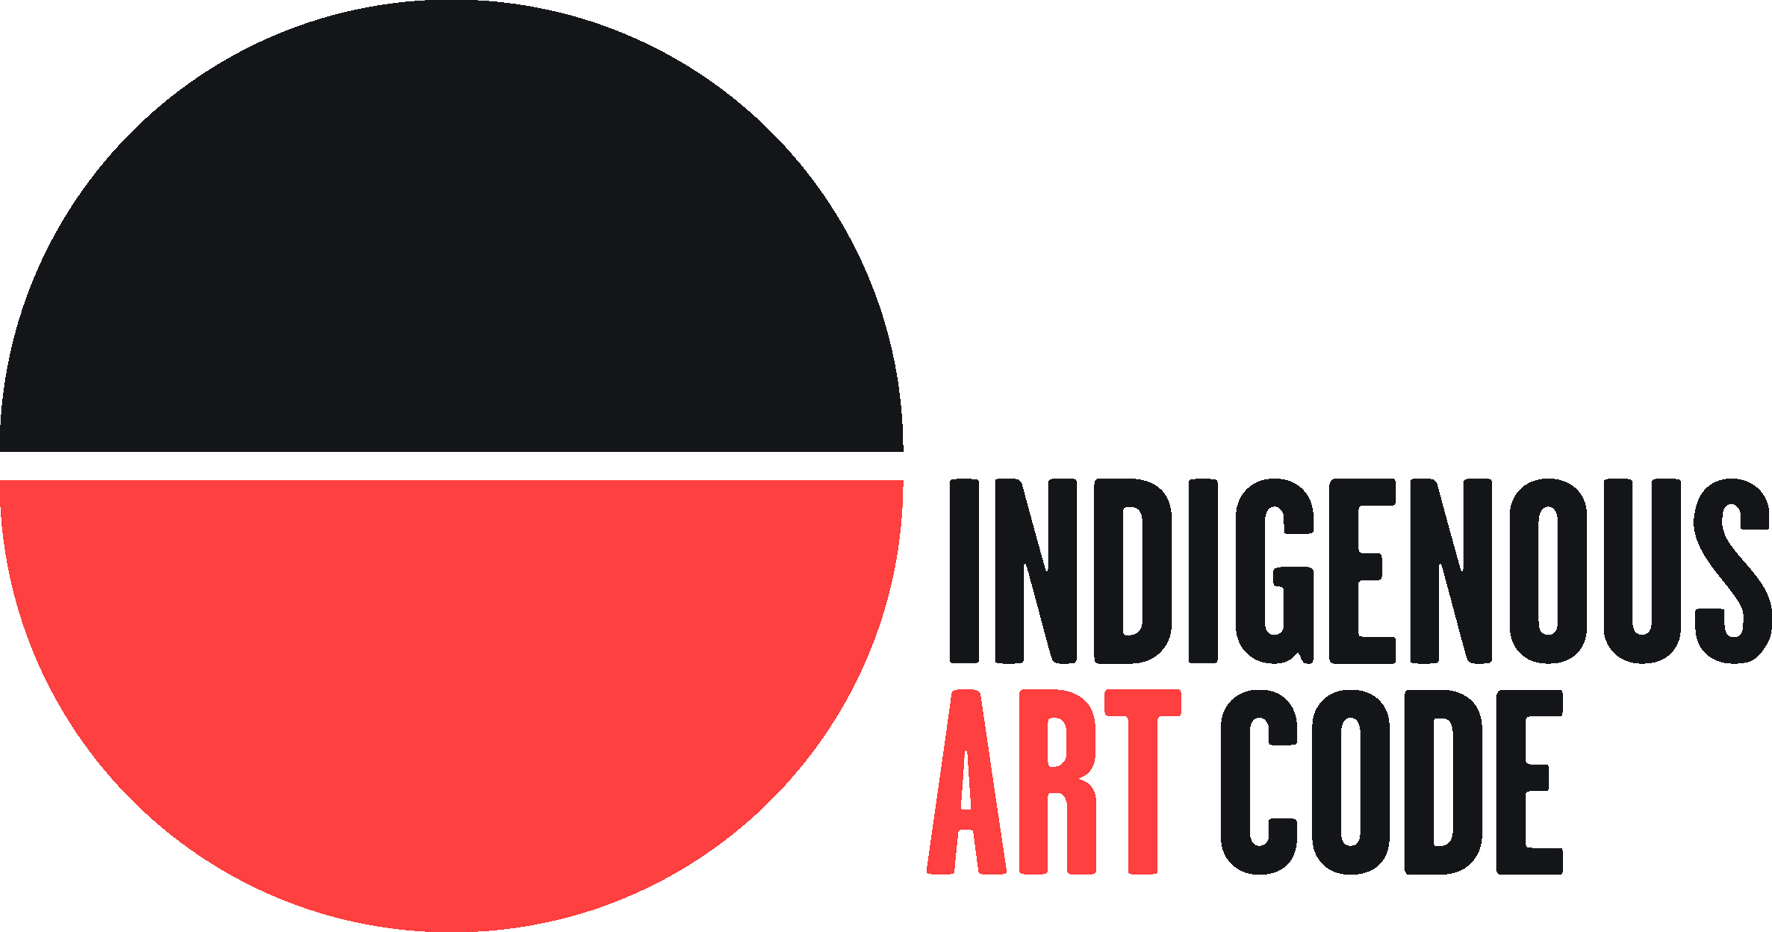 Member of the Indigenous Art Code - The Indigenous Art Code is a system to preserve and promote ethical trading in Indigenous art